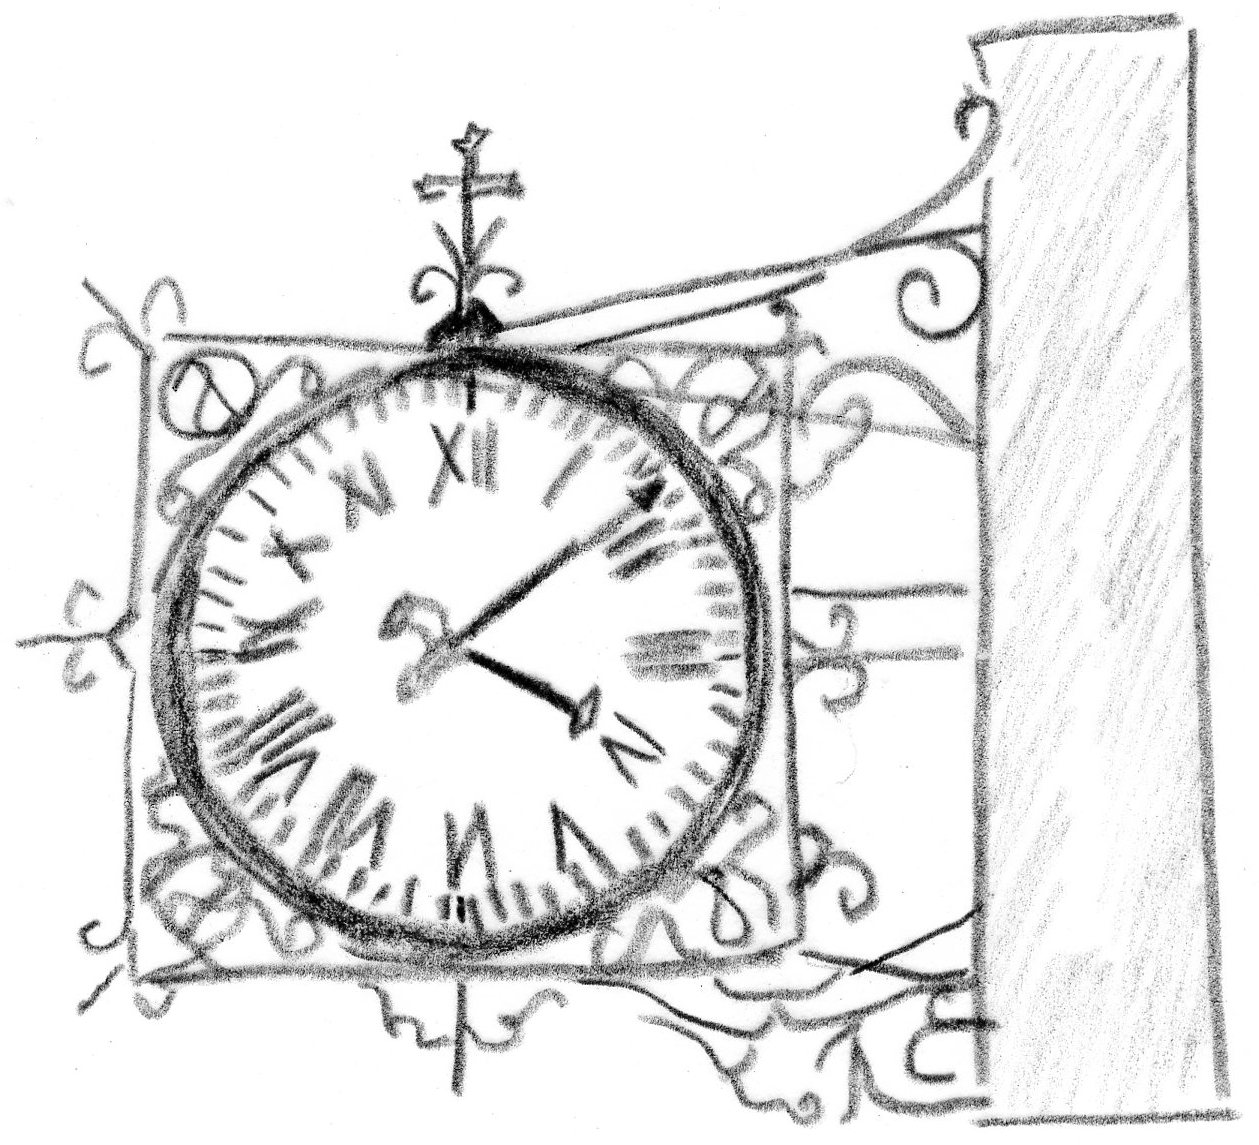 Skteched Clock Face for Book.jpg